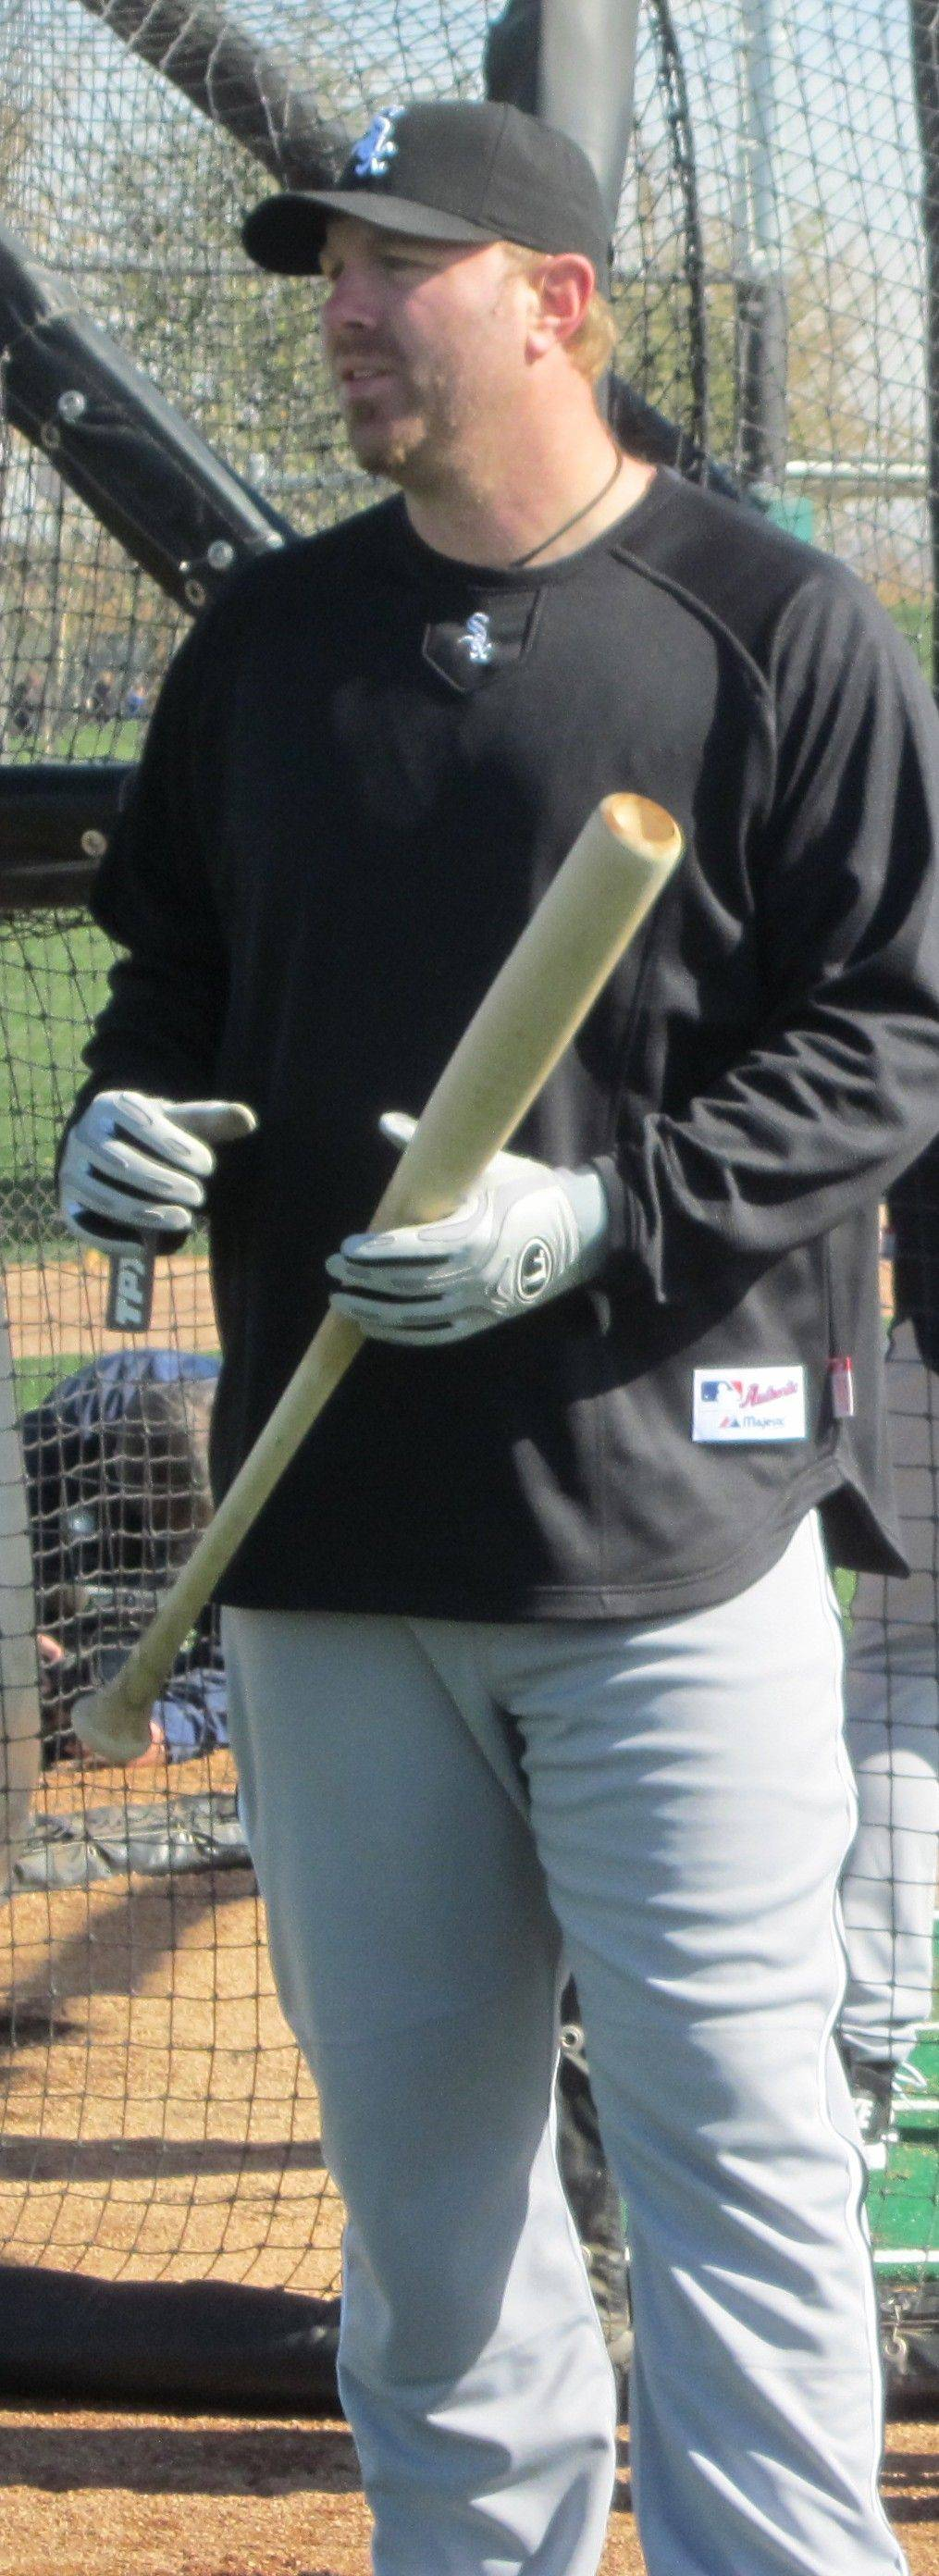 Adam Dunn gets ready for batting practice Monday at the White Sox training facilities in Glendale, Ariz.